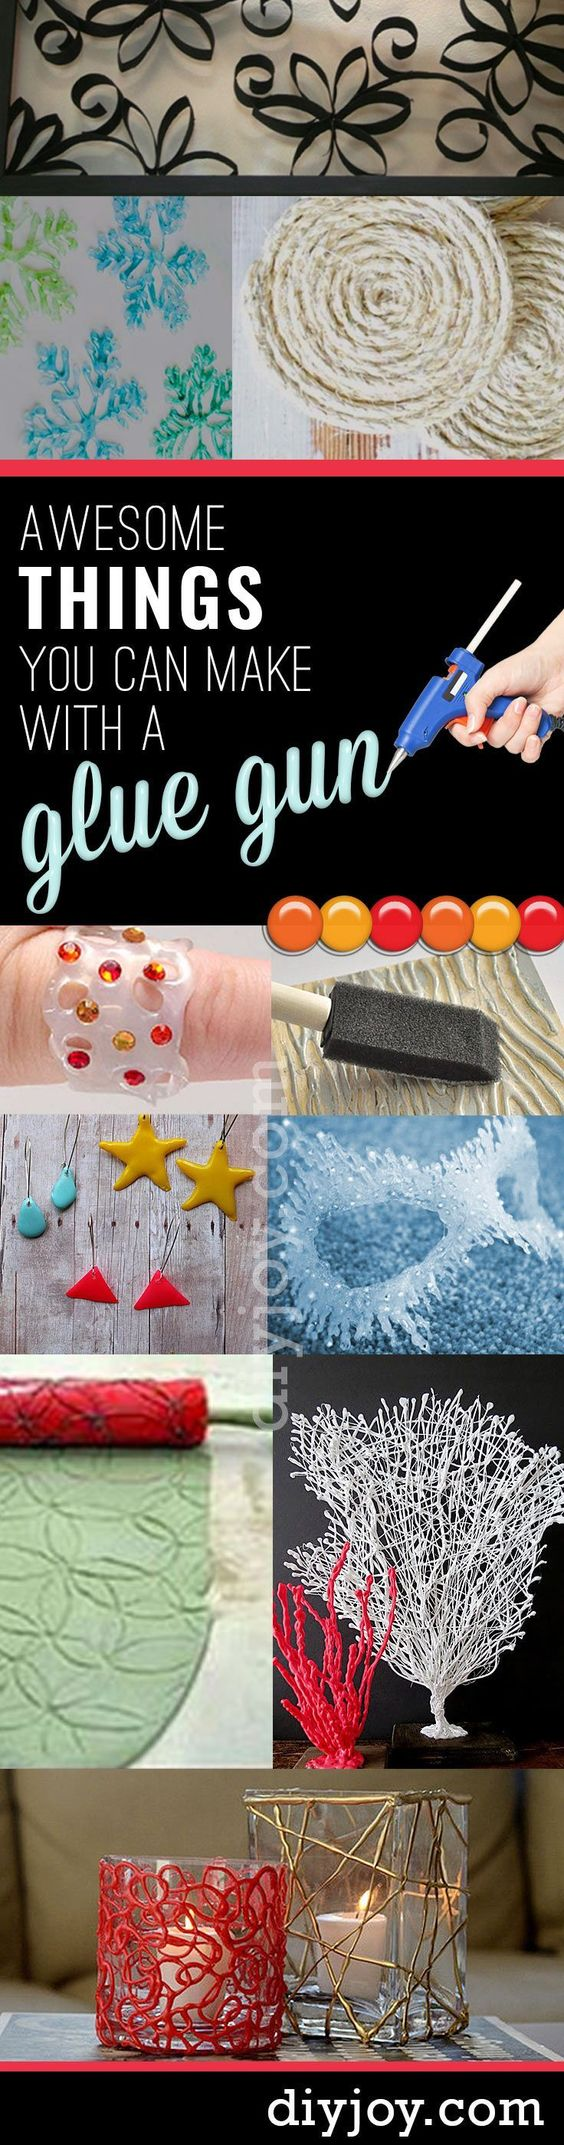 Unbelievably cool things you can make with a glue gun jewe for Cool creative things